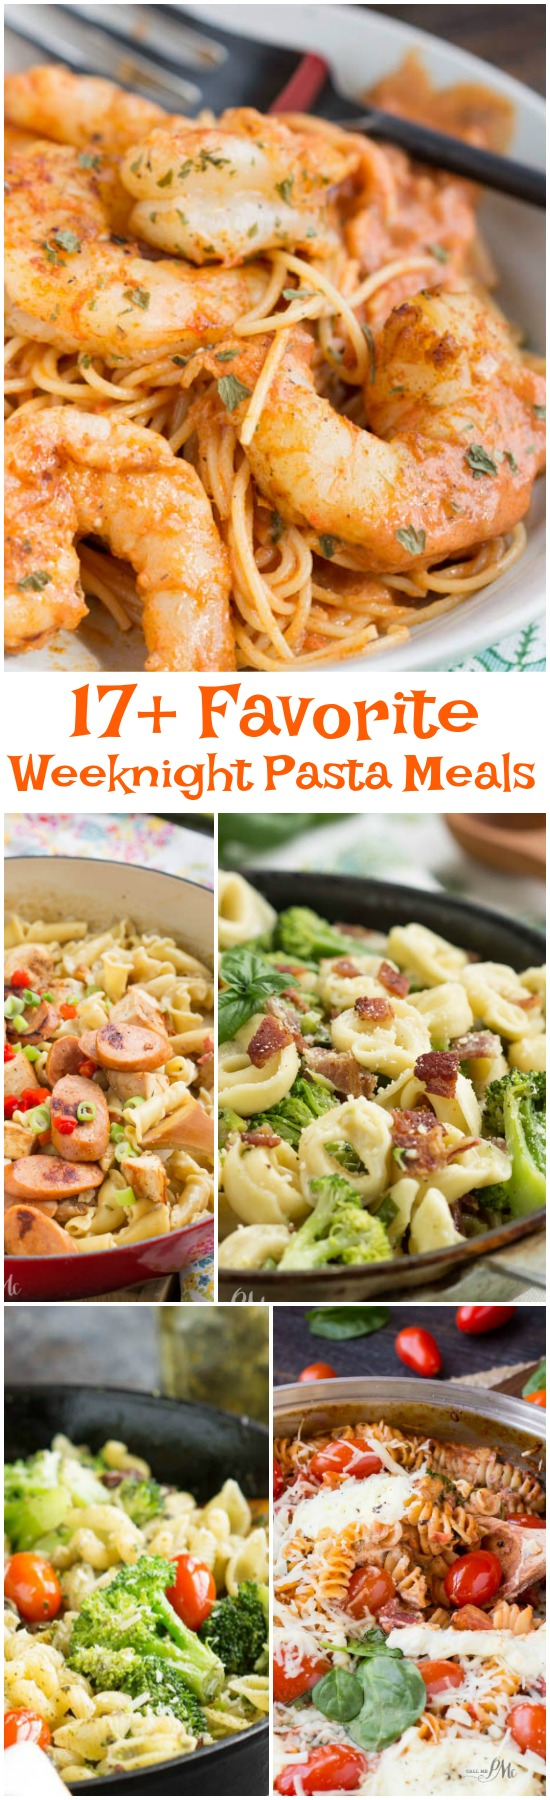 My 17+ Favorite Weeknight Pasta Dinners that are tasty, filling, and best of all uncomplicated to make. You are going to be absolutely in love with these amazing pasta recipes.